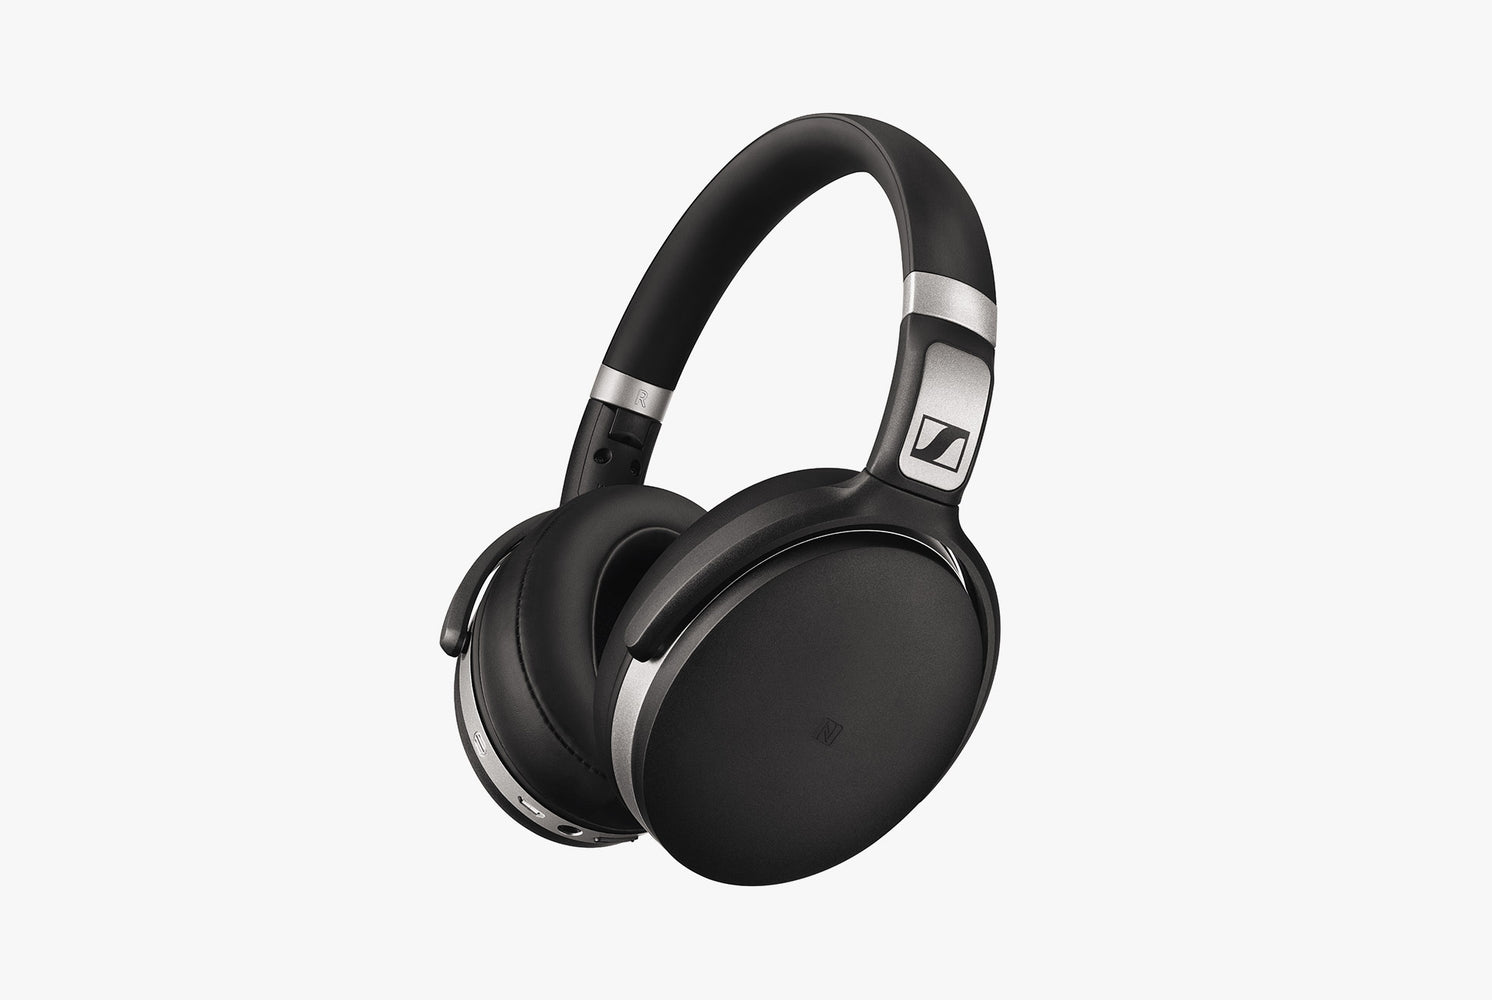 Sennheiser HD 4.50 BTNC Headphones - Angled photo